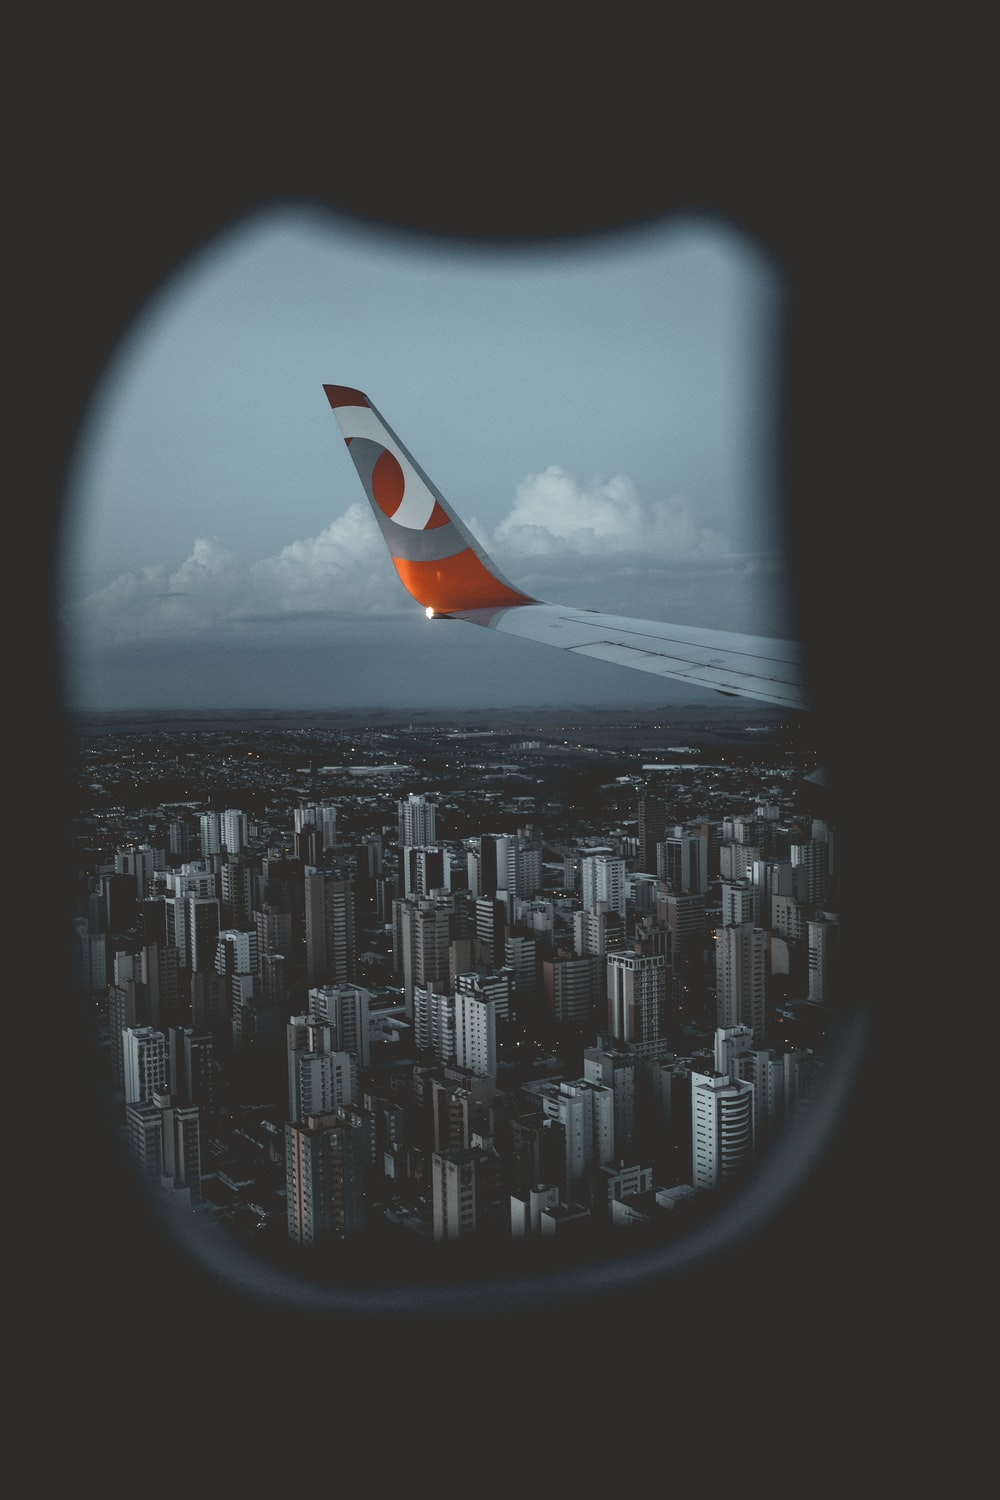 orange and gray plane winged flying on air during daytime